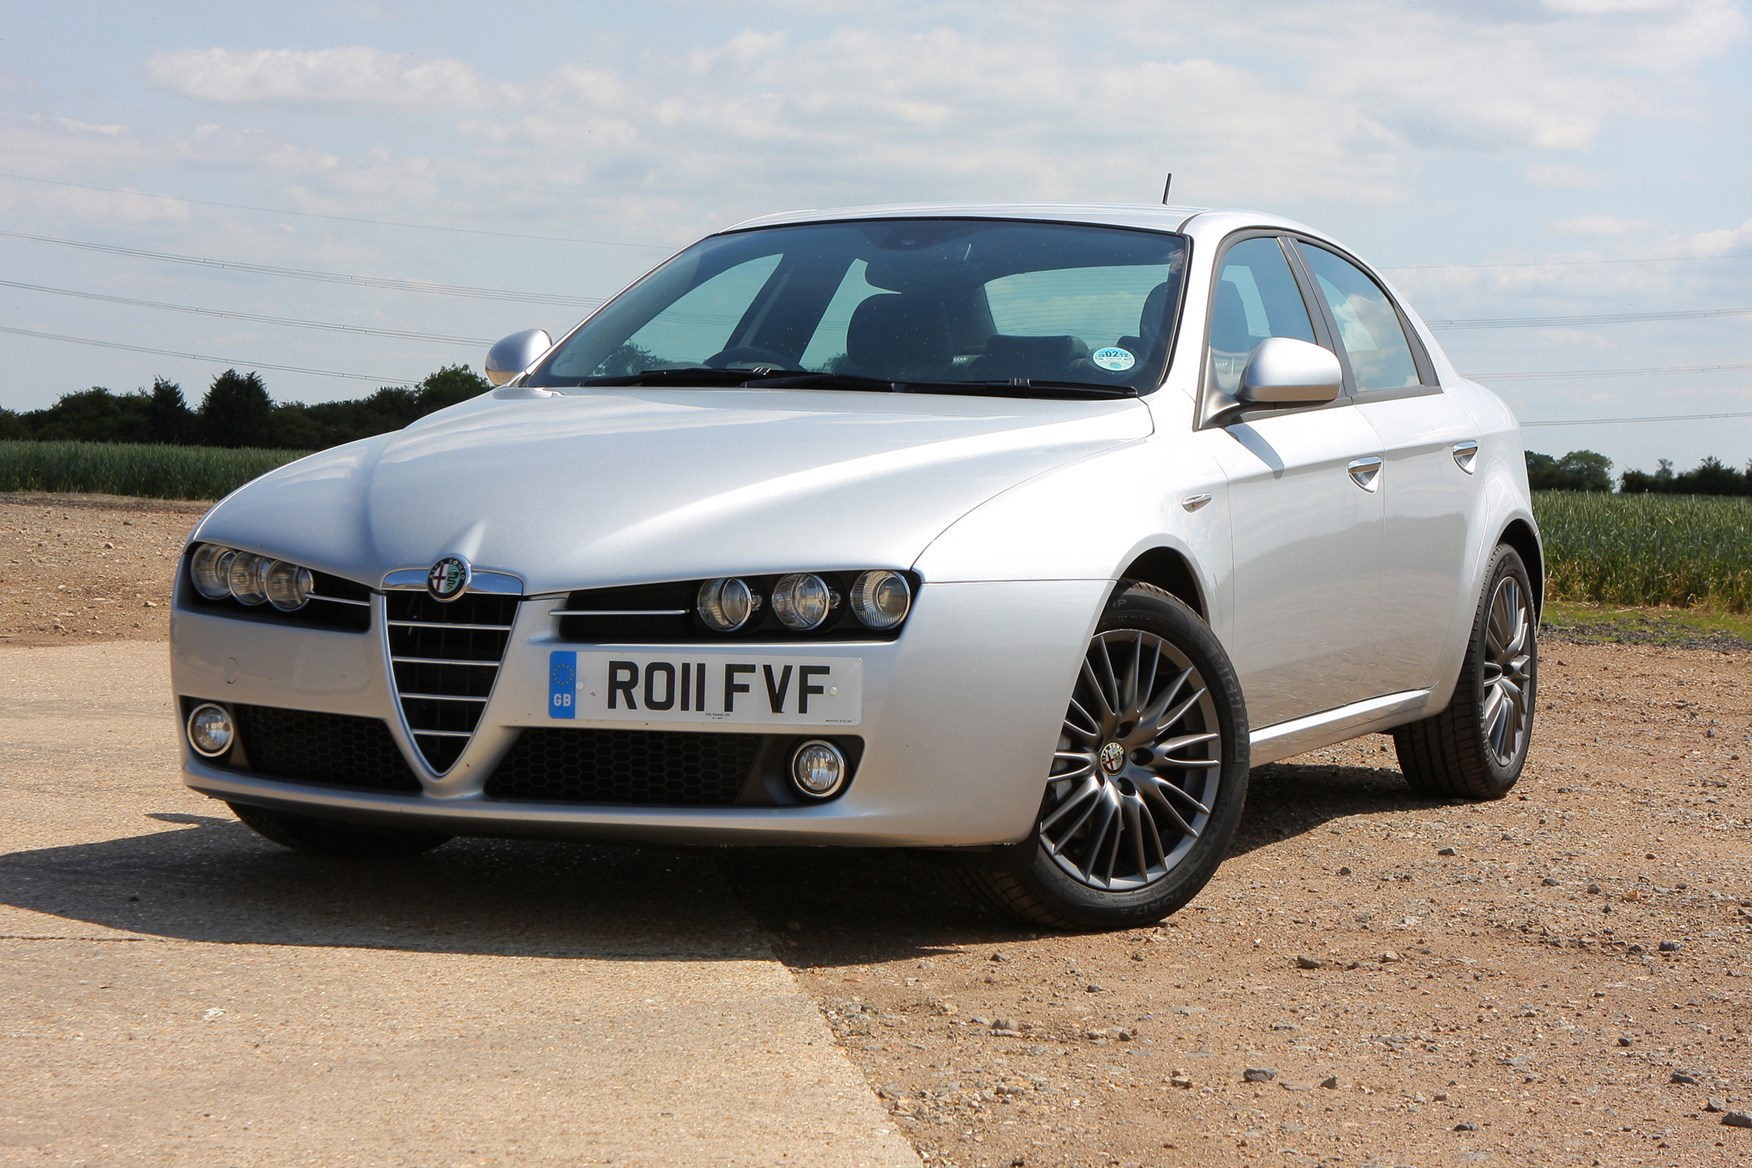 alfa romeo 159 saloon 2006 2011 photos parkers. Black Bedroom Furniture Sets. Home Design Ideas